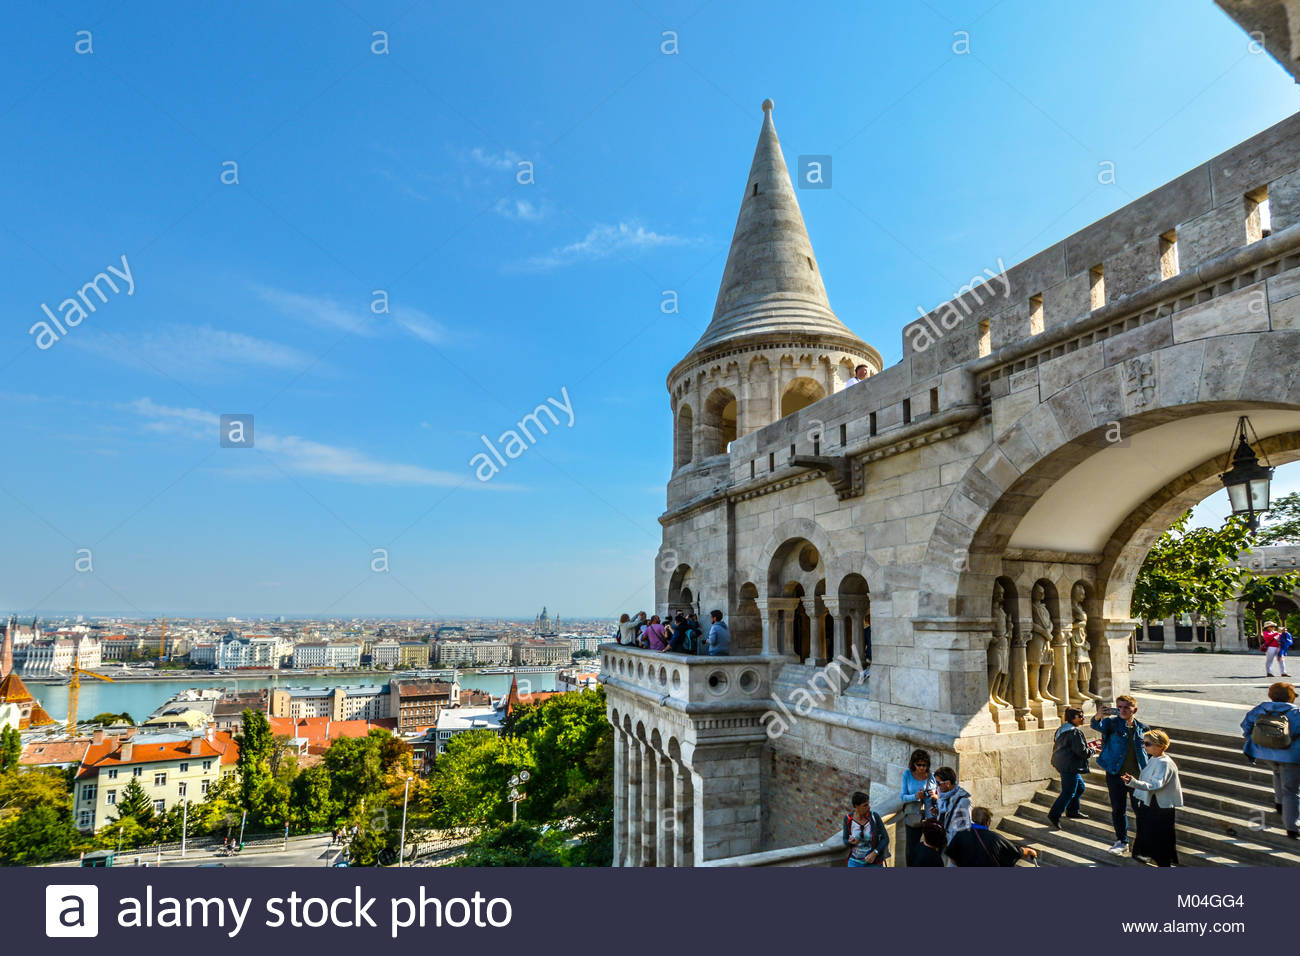 Tourists enjoy the fairy tale towers at Fisherman's Bastion overlooking the Danube River at Budapest Hungary's Castle Stock Photo